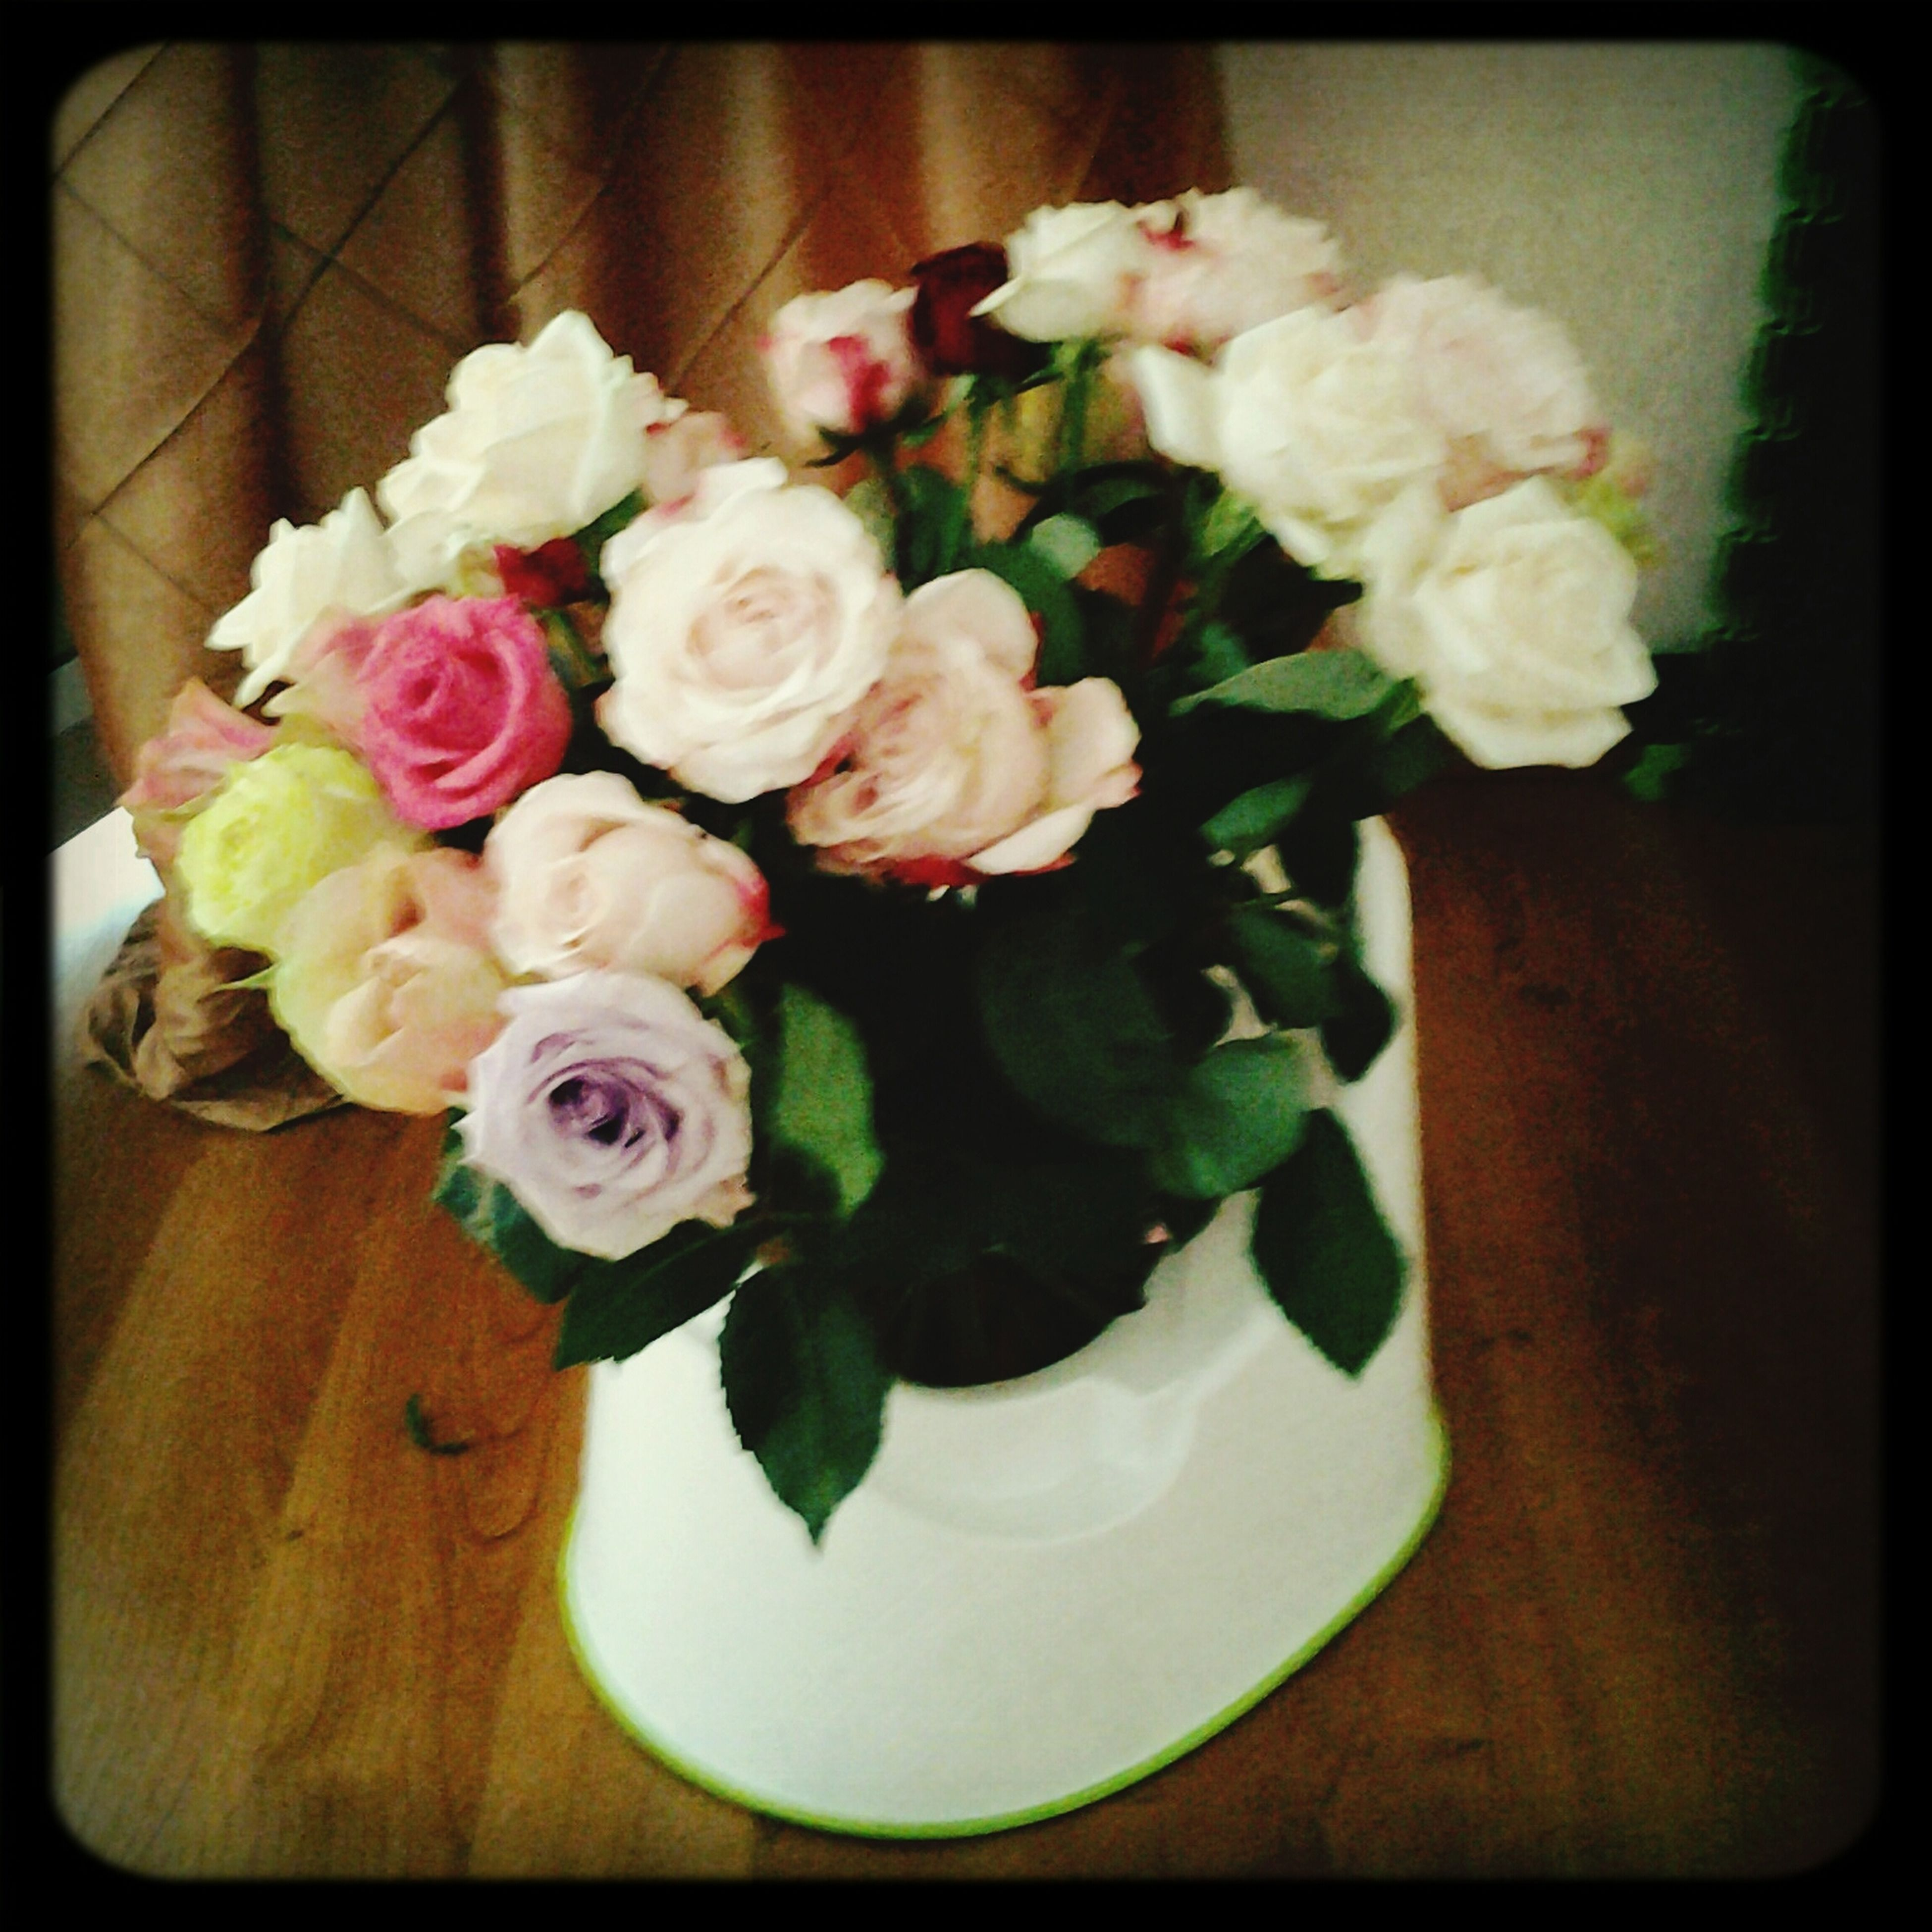 flower, freshness, transfer print, indoors, fragility, petal, flower head, vase, rose - flower, bouquet, beauty in nature, bunch of flowers, auto post production filter, flower arrangement, table, close-up, growth, nature, high angle view, rose